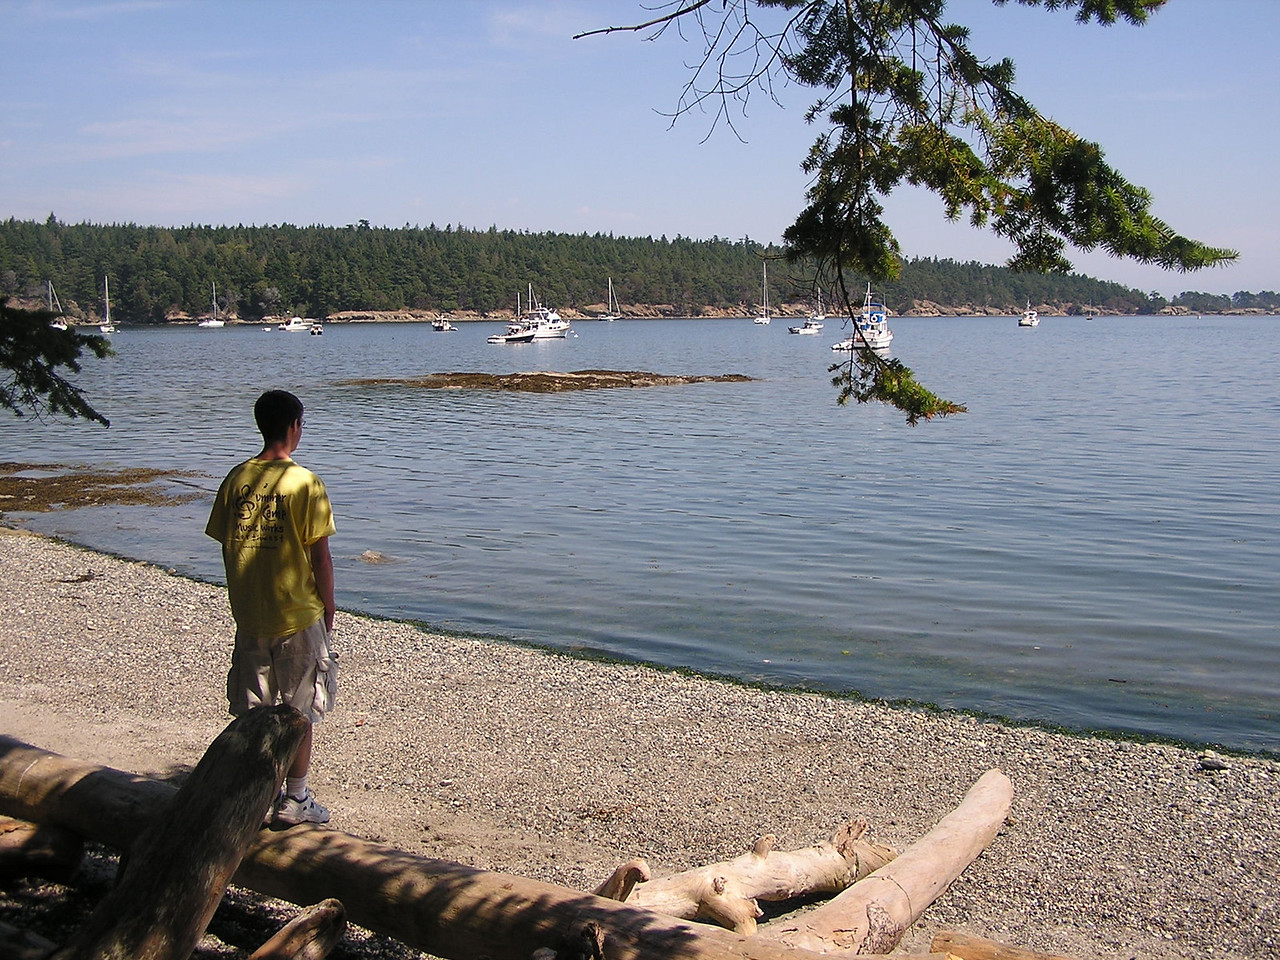 Echo Bay on Sucia Island (looking southeast).